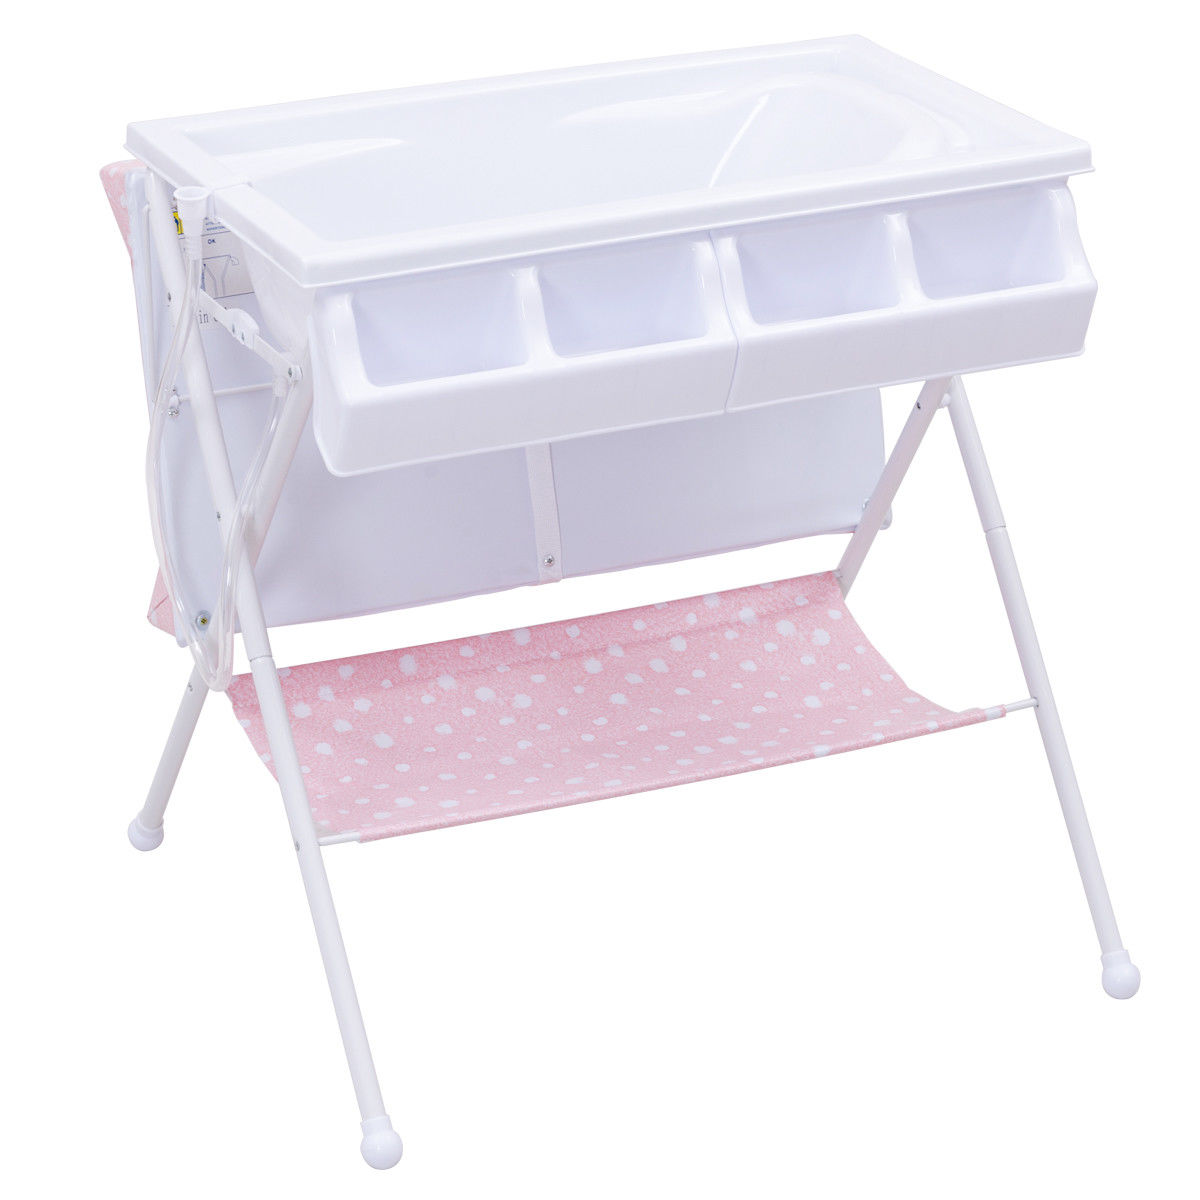 Costway Infant Baby Bath Changing Table Diaper Station Storage Organizer - image 7 of 8